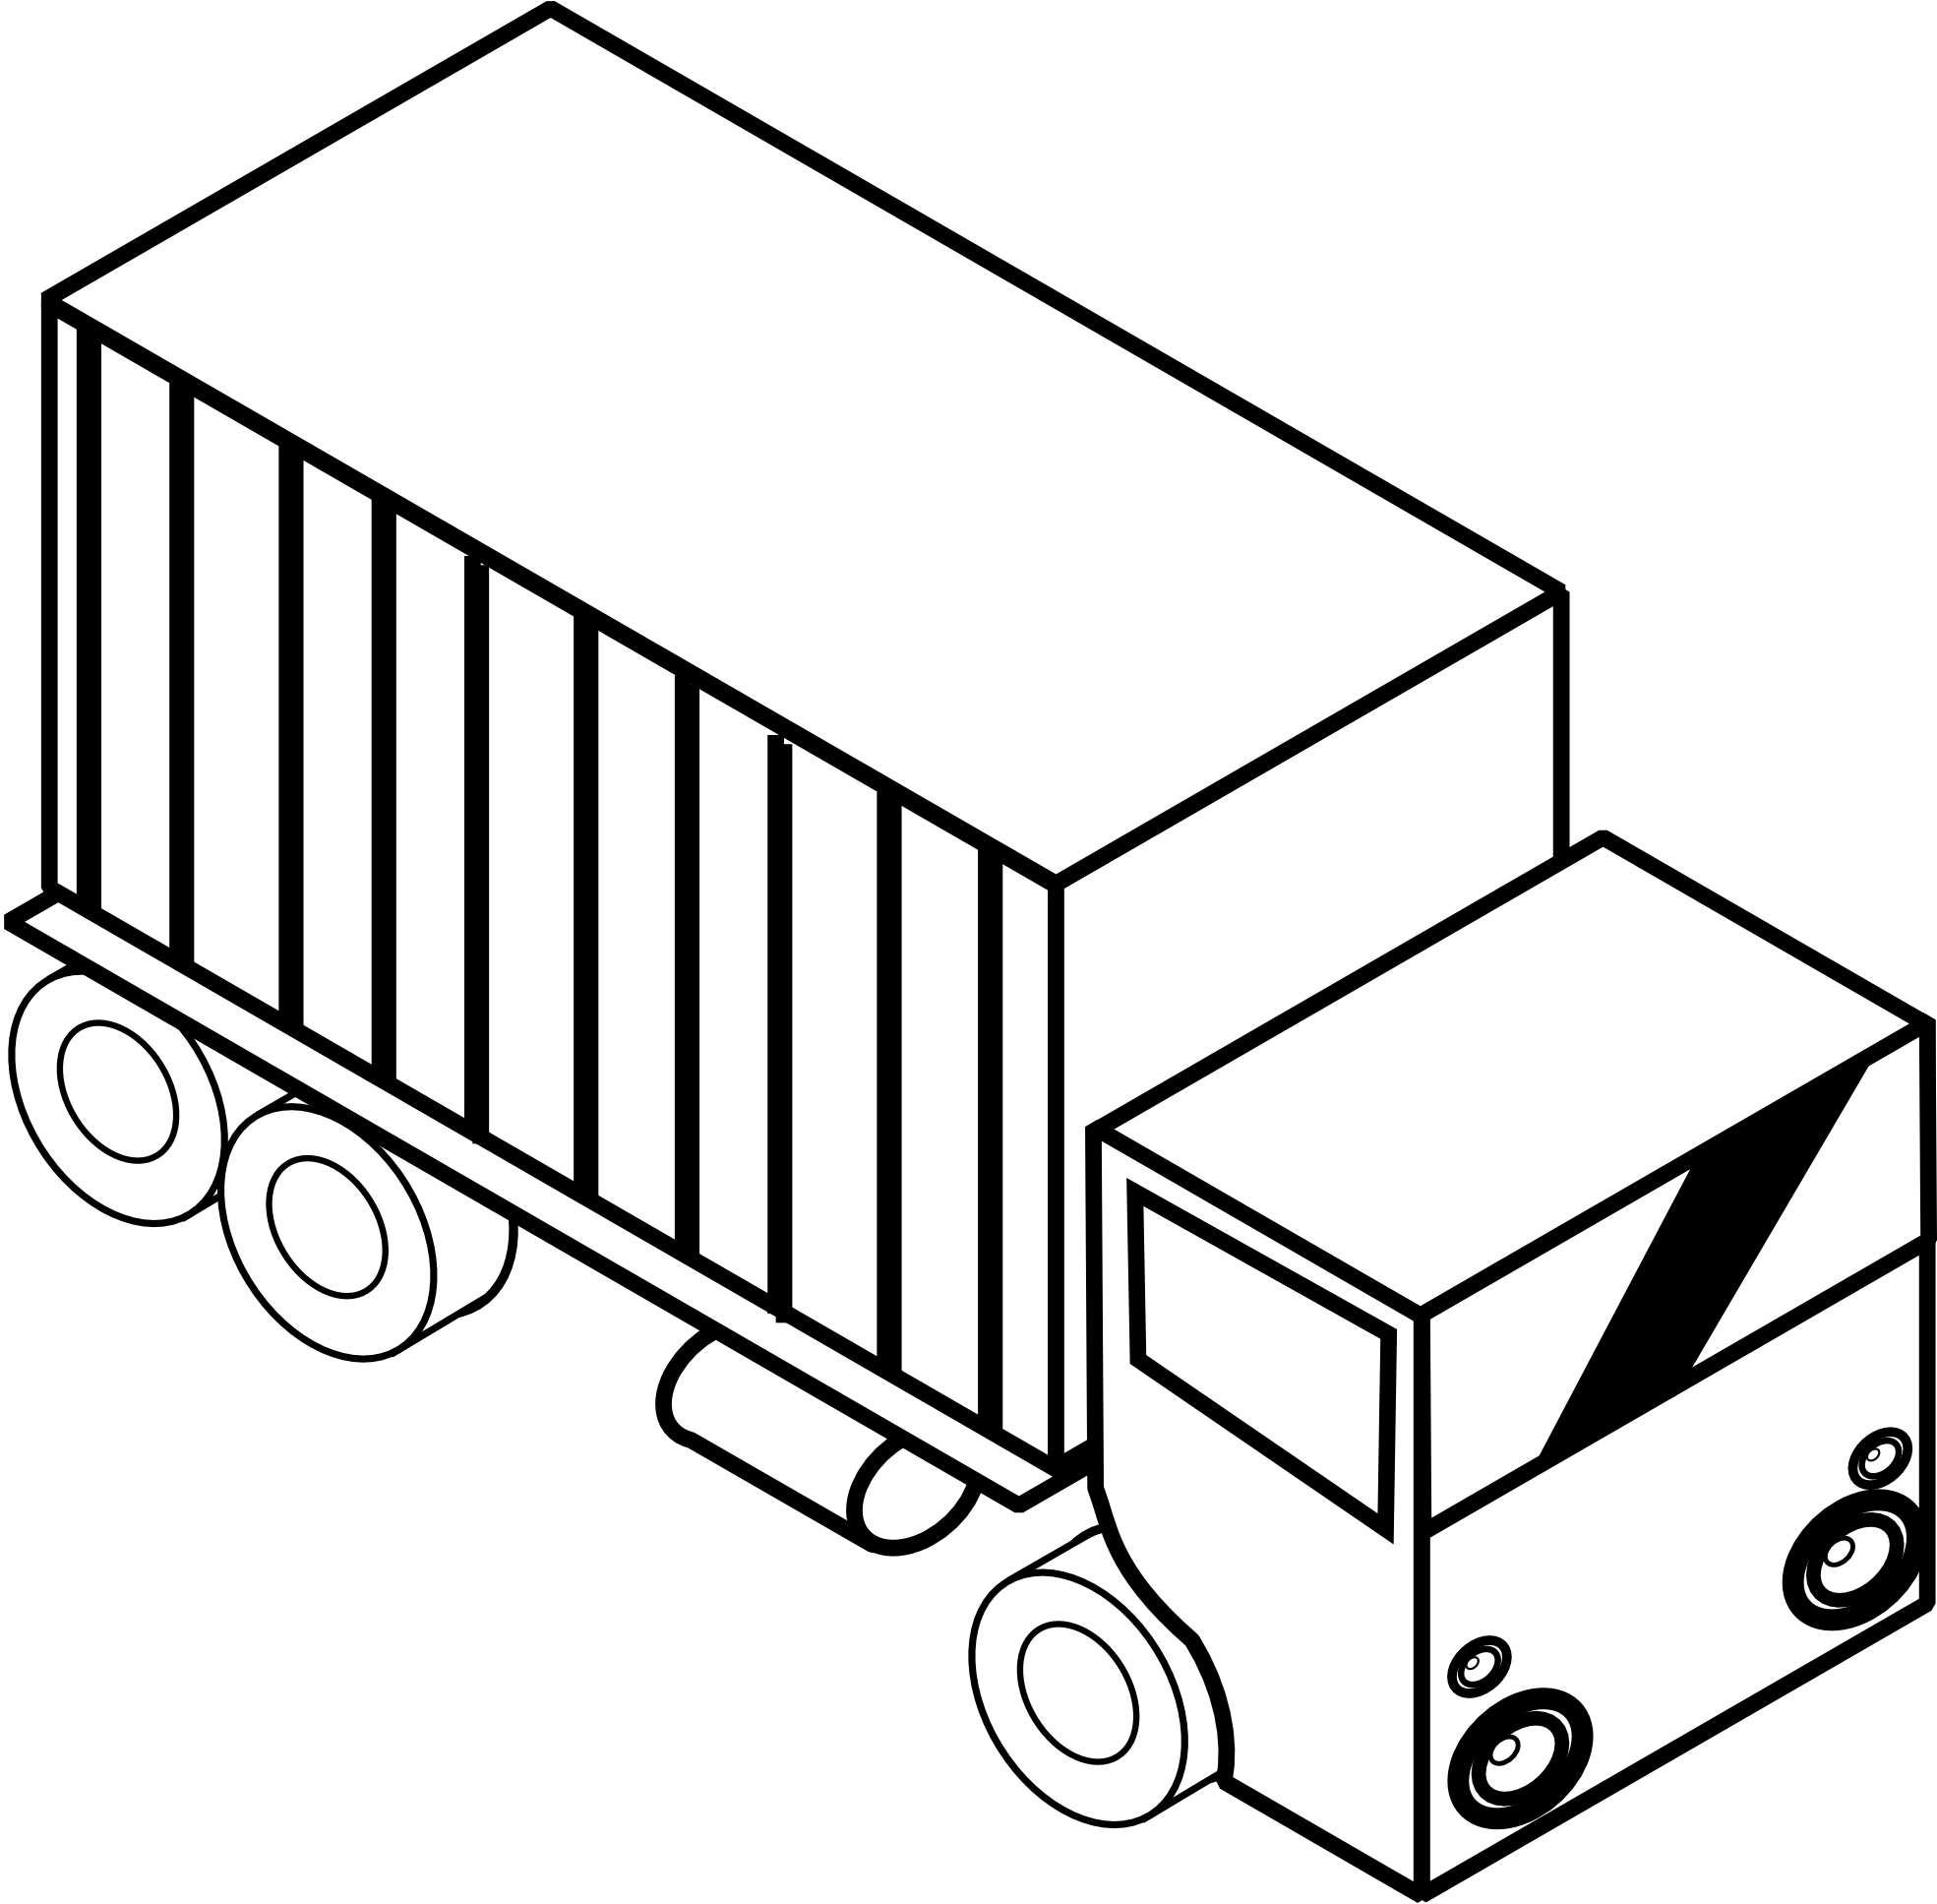 Flatbed train car clipart jpg black and white Truck Clipart Black And White | Clipart Panda - Free Clipart Images jpg black and white